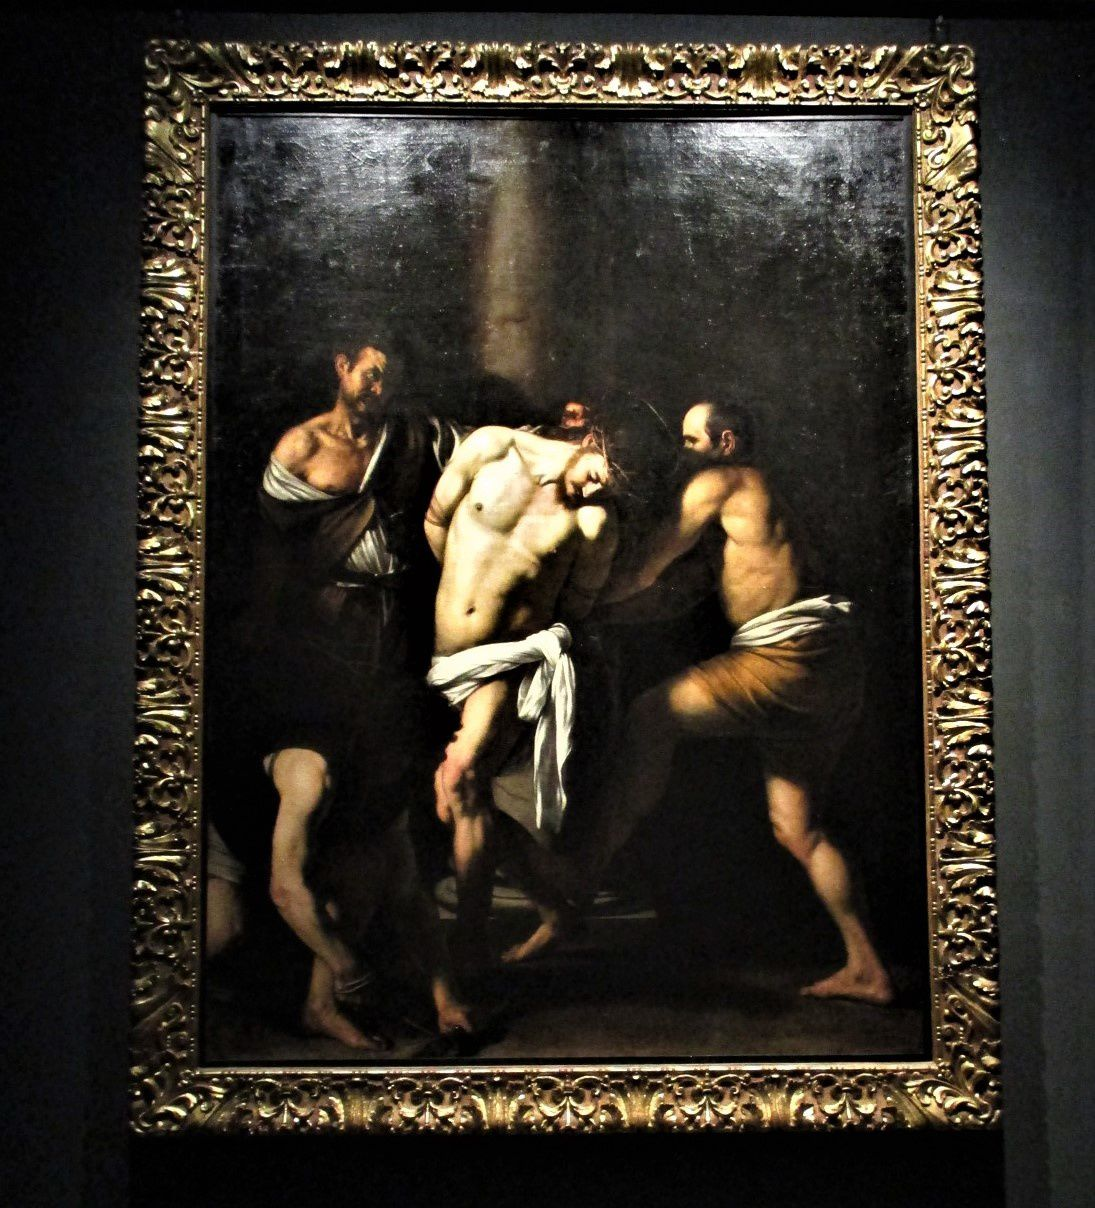 La flagellation du Christ - Le Caravage, 1607